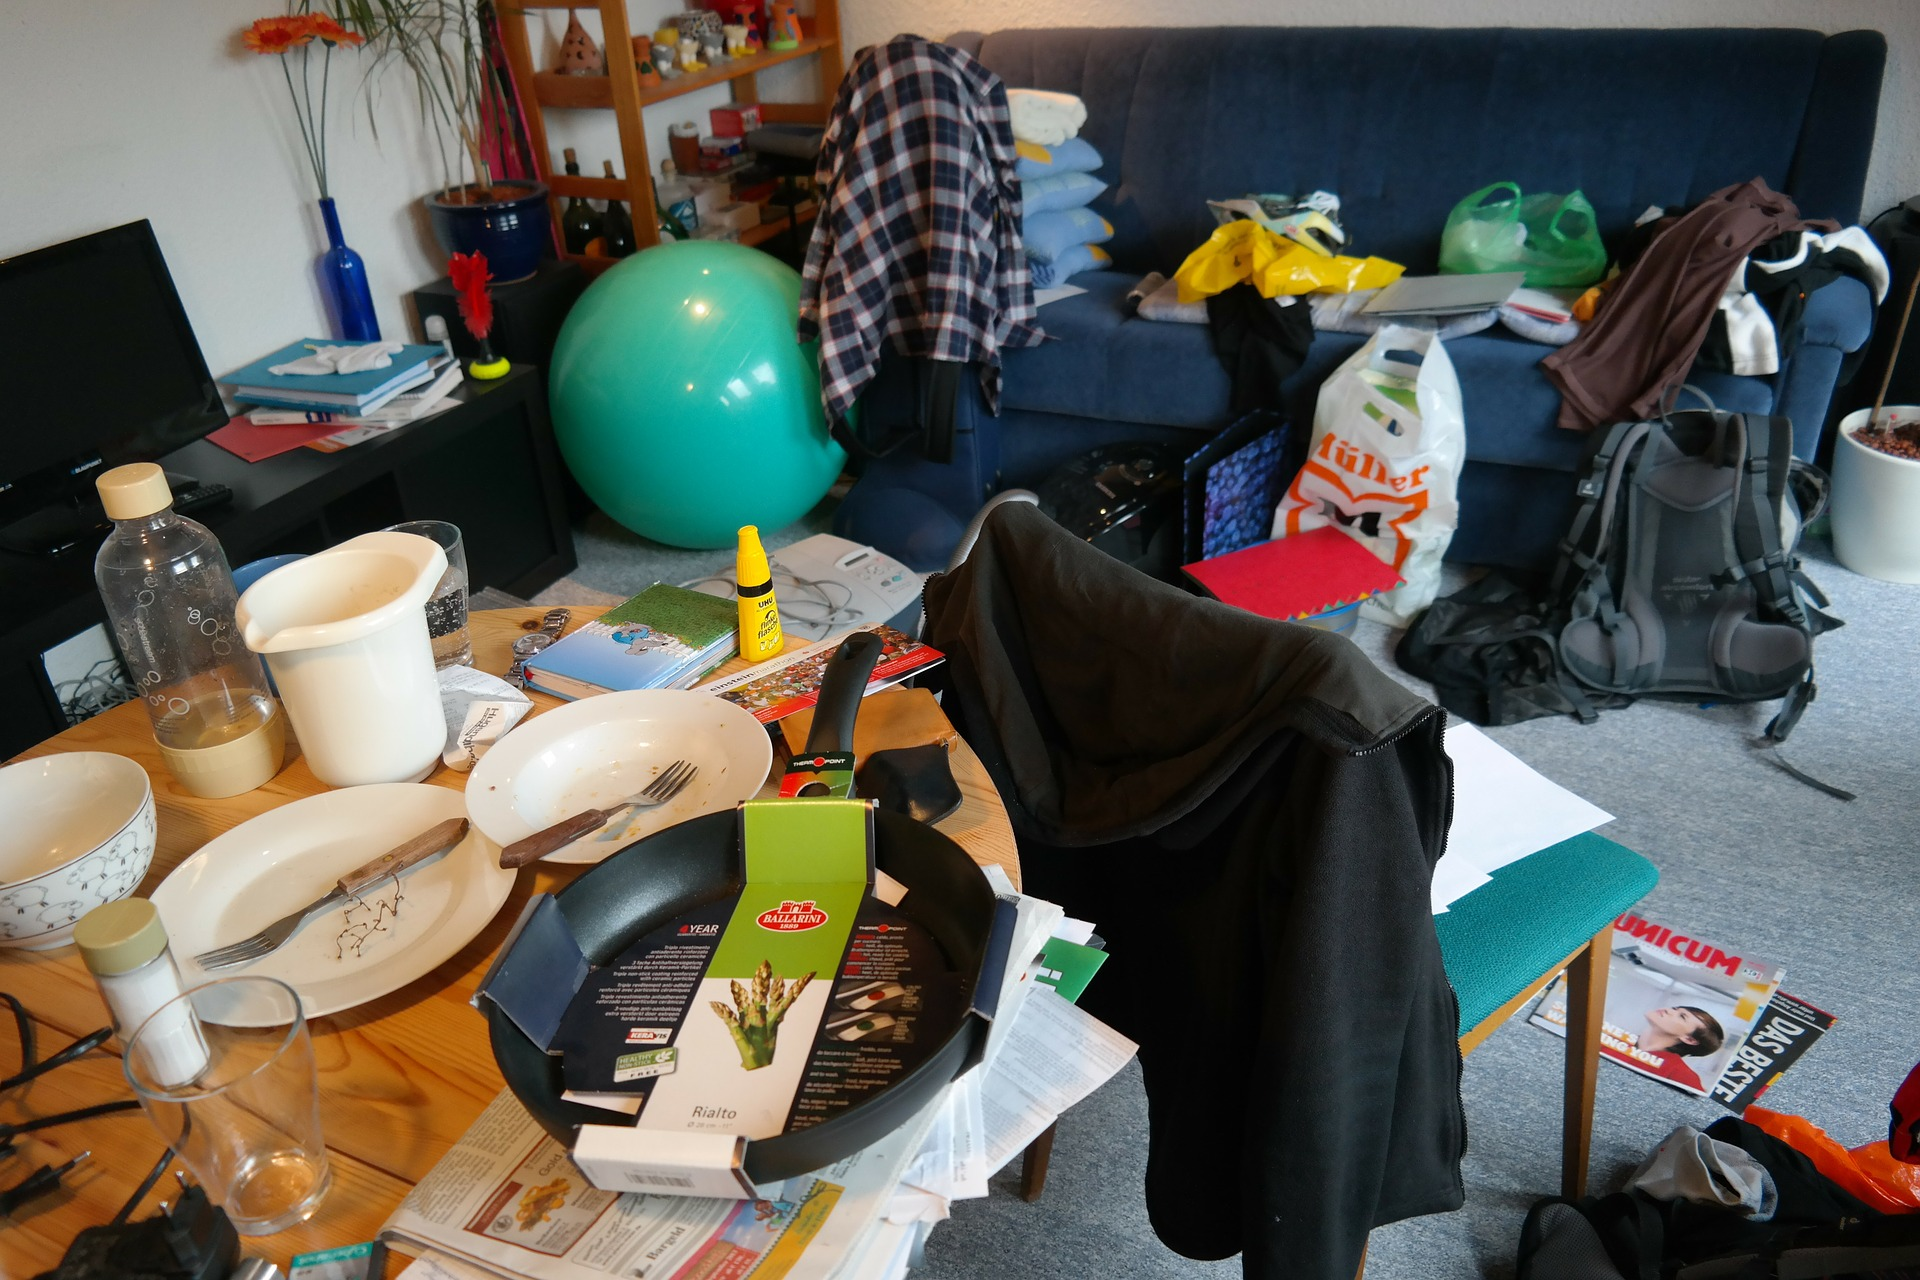 Clutter Cleanup Long Island NY